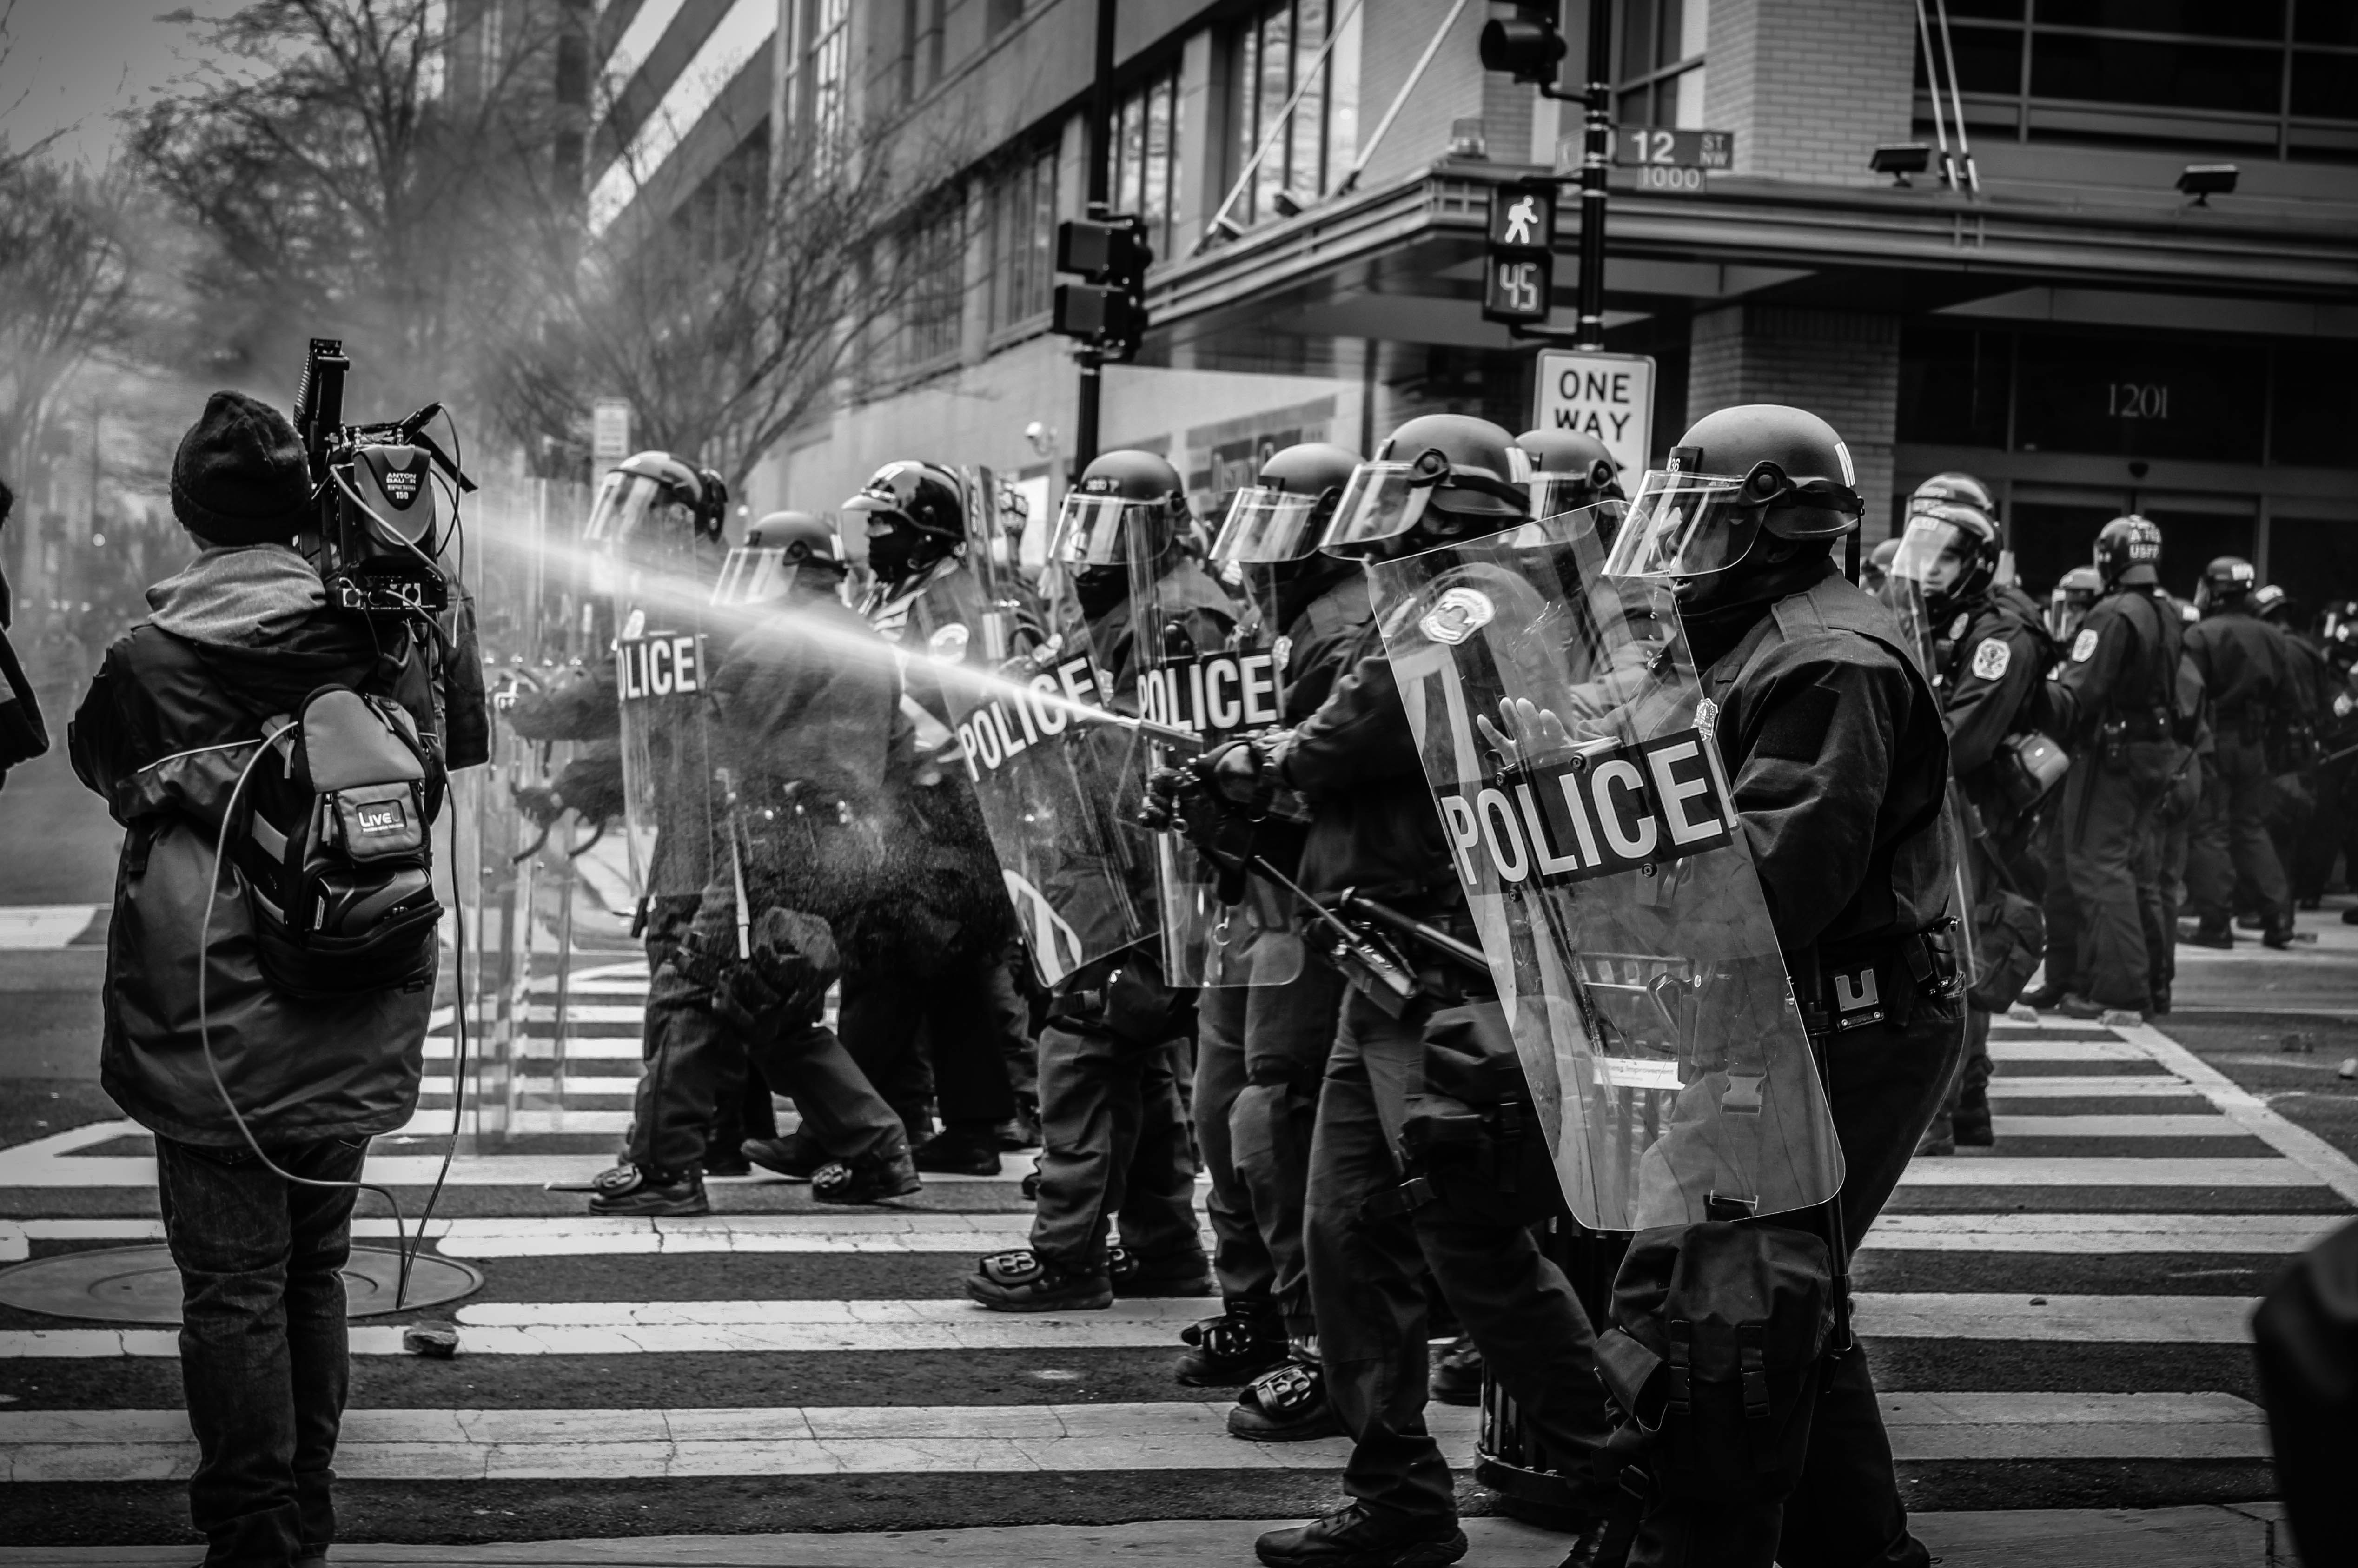 grayscale photo of police riot team on pedestrian lane